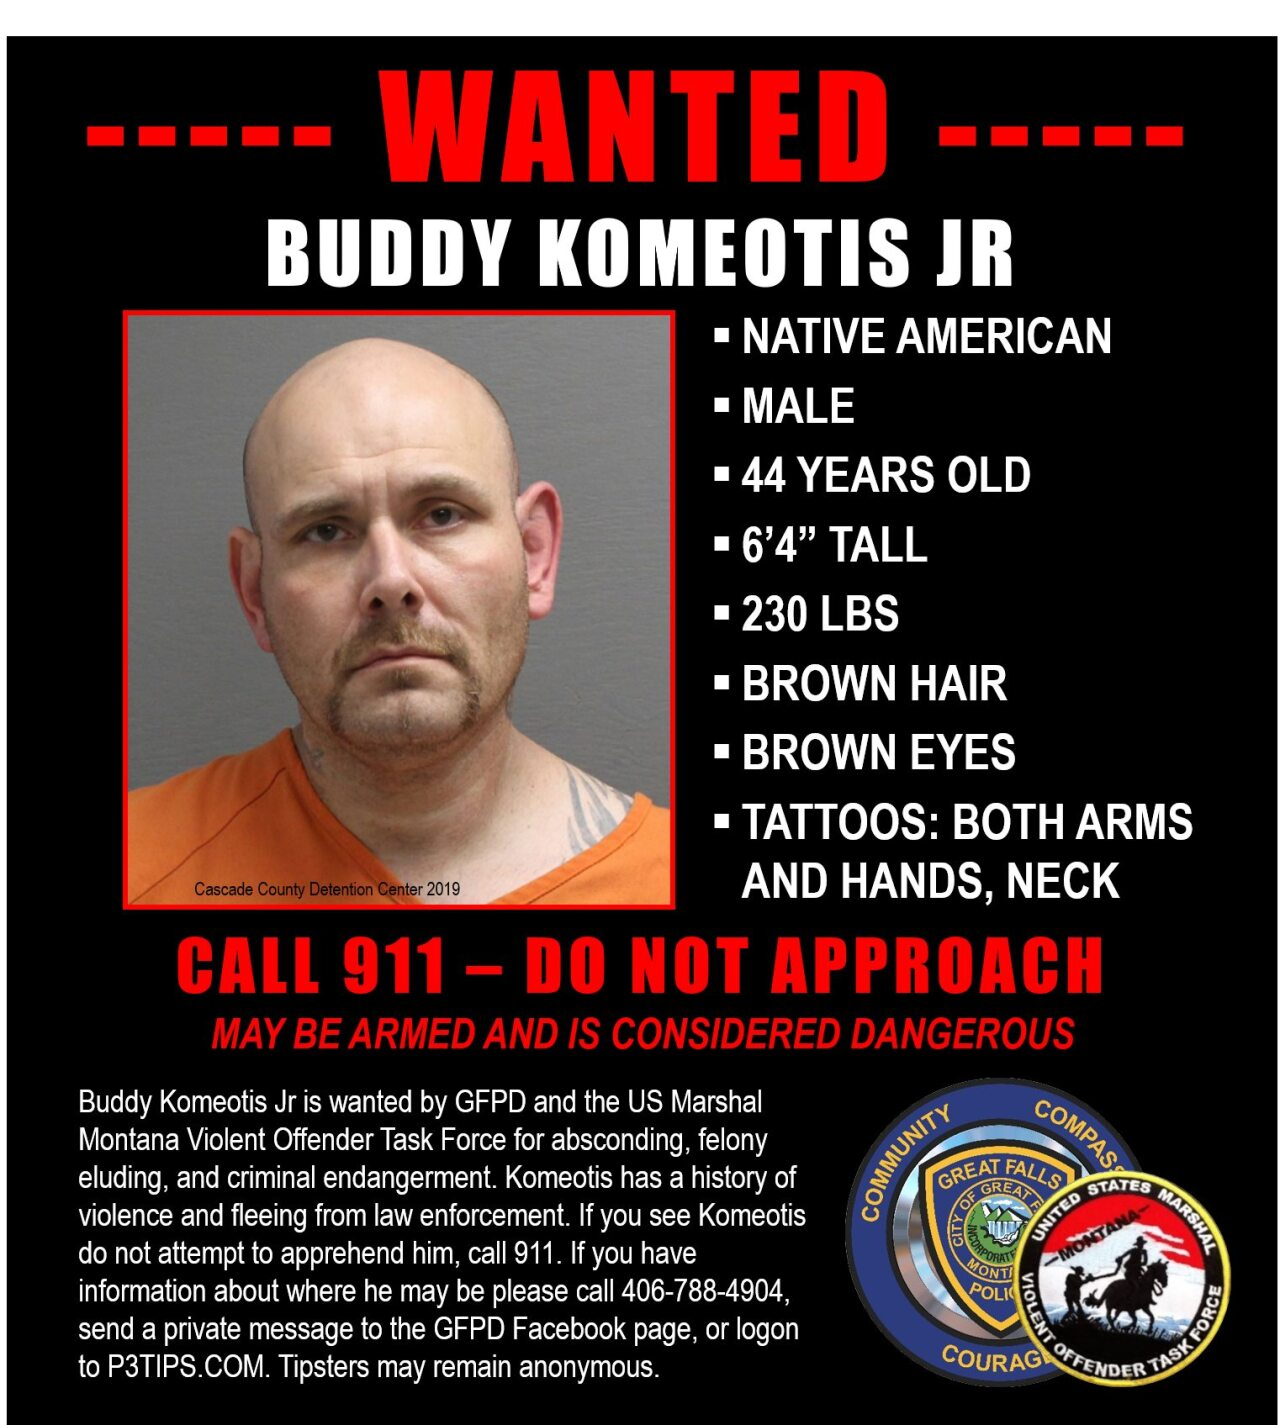 """The Great Falls Police Department has issued an """"attempt to locate"""" alert for Buddy Komeotis, Jr."""